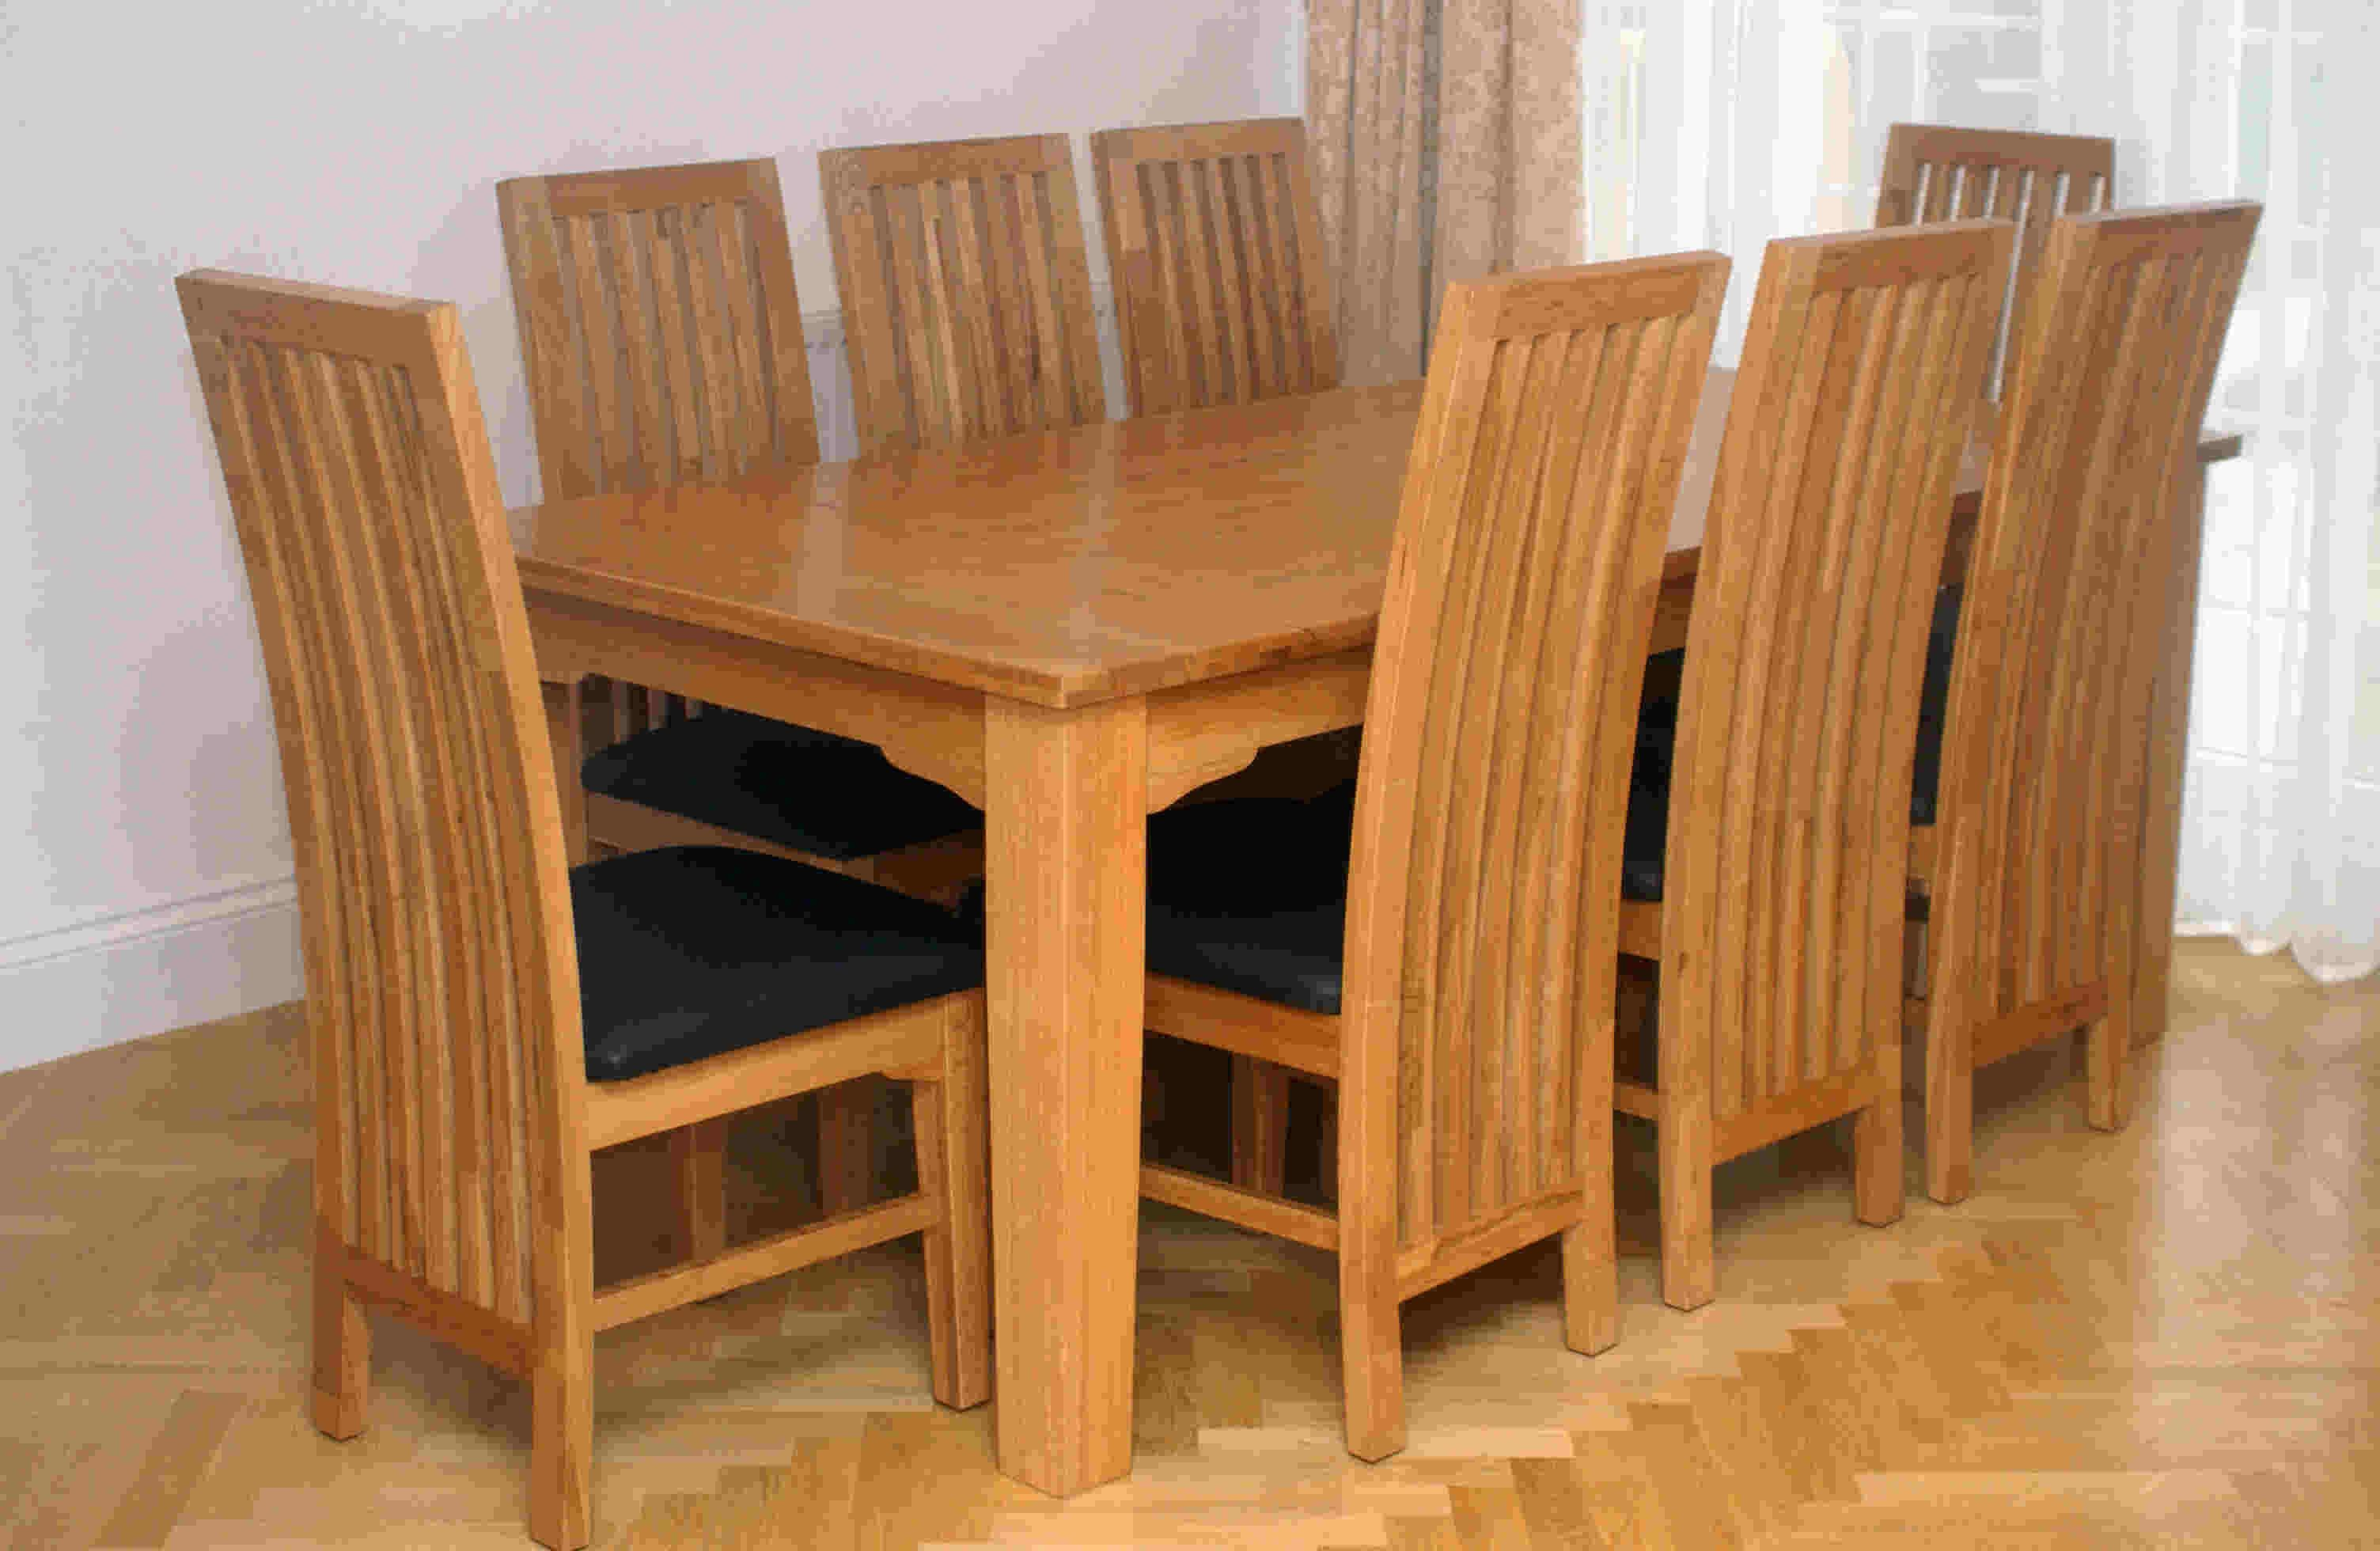 Modern Wood Furniture Plans plans for high quality wood furniture ..visit here.. http://dld.bz